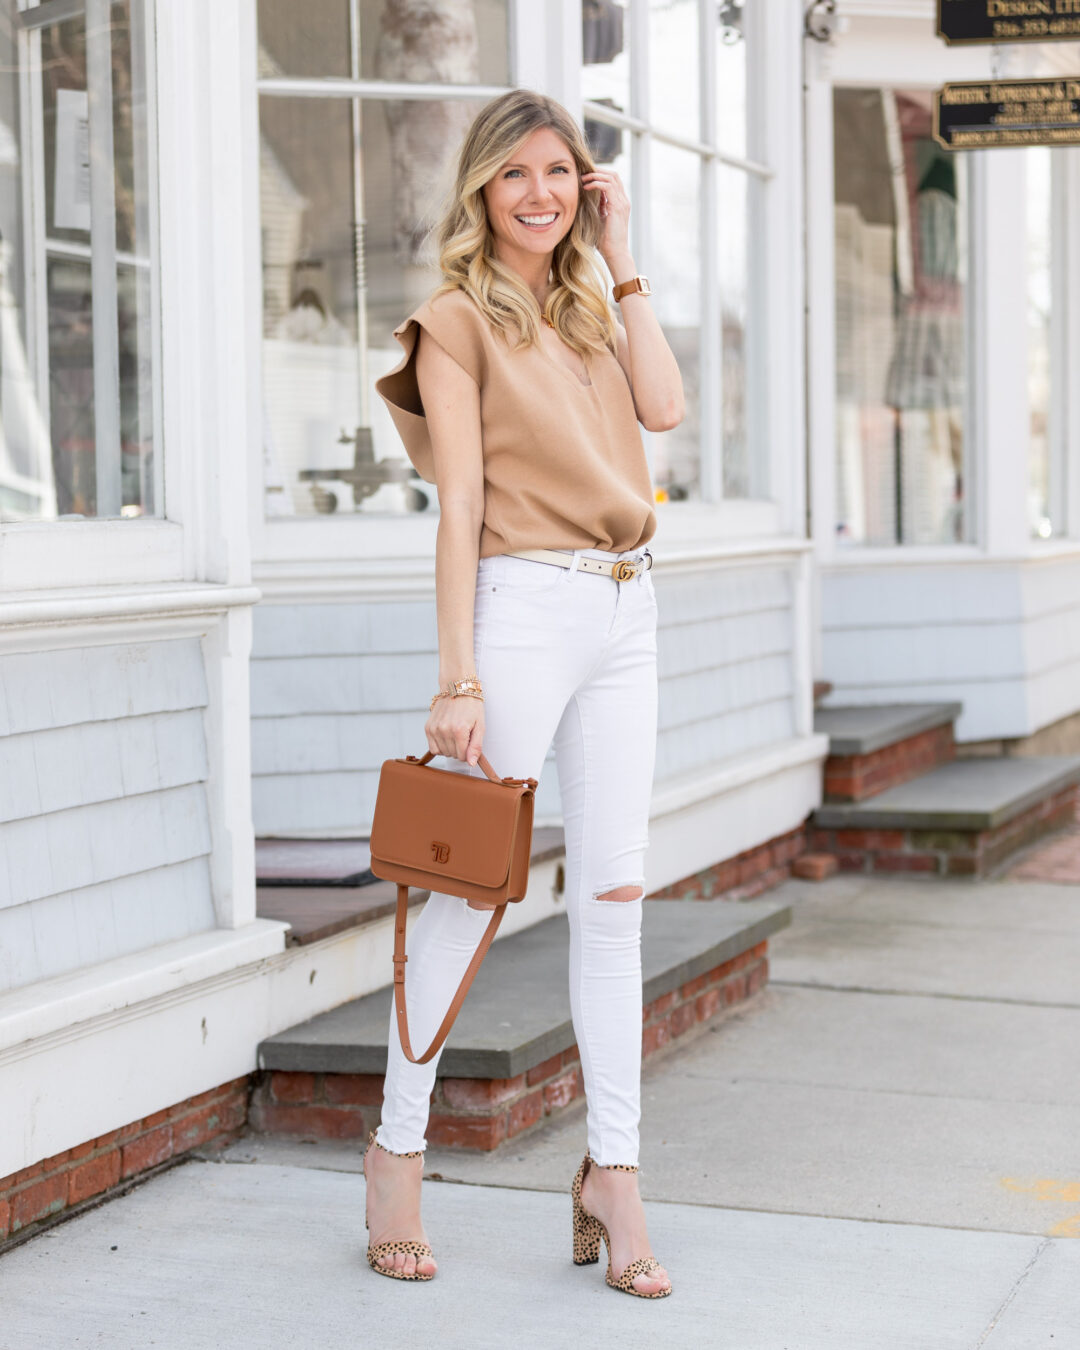 simple-brunch-outfit-for-spring-the-glamorous-gal